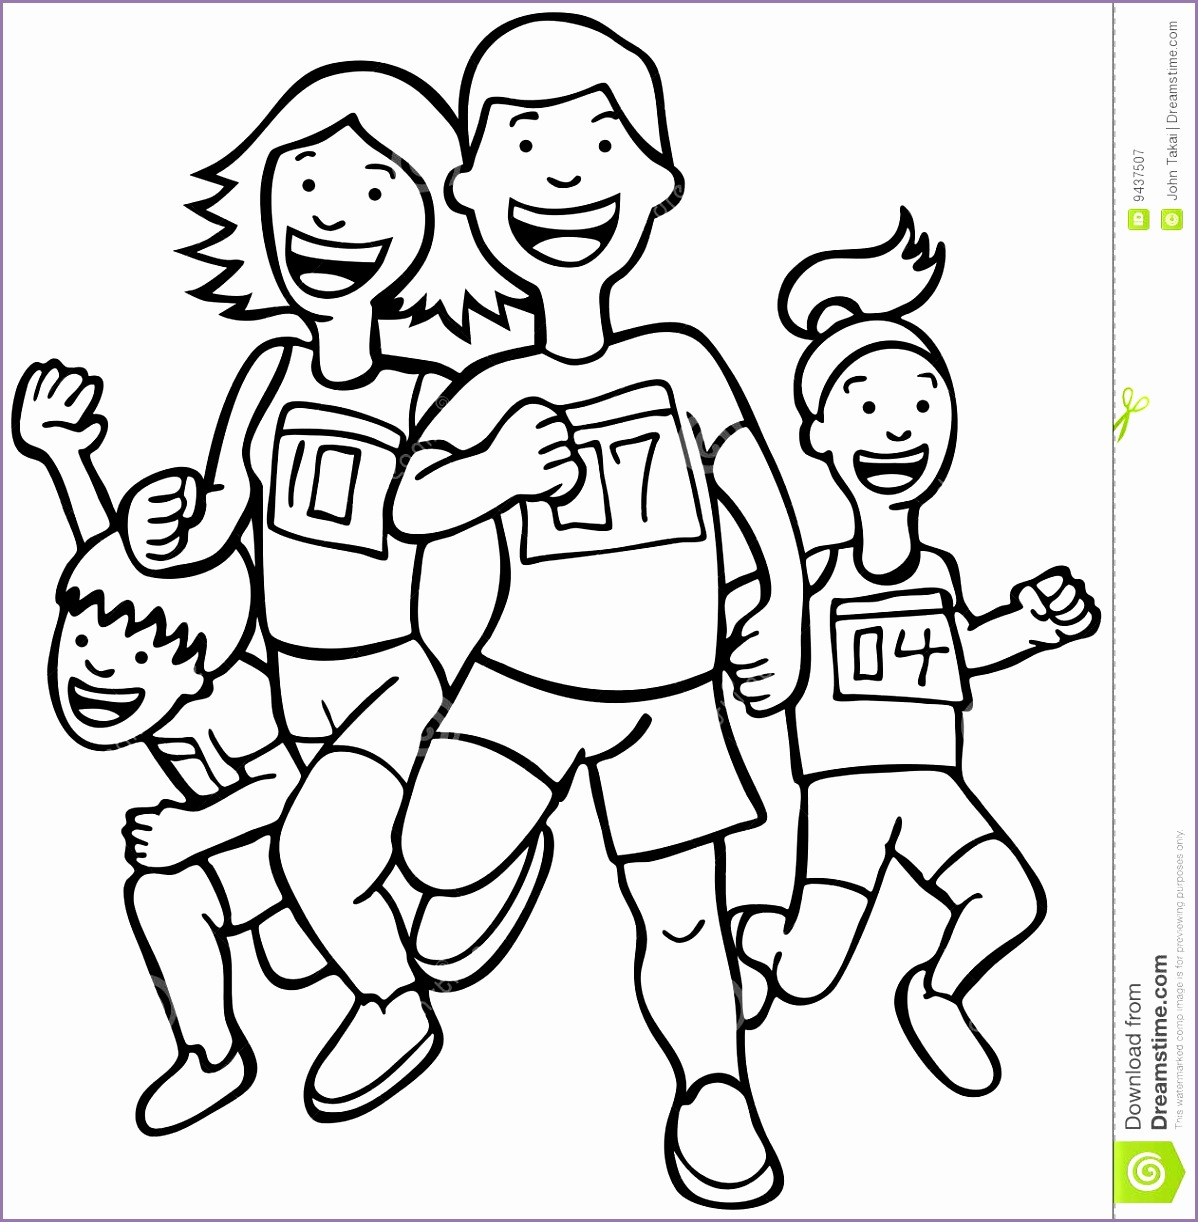 5 Kids Exercise Clipart Black And White